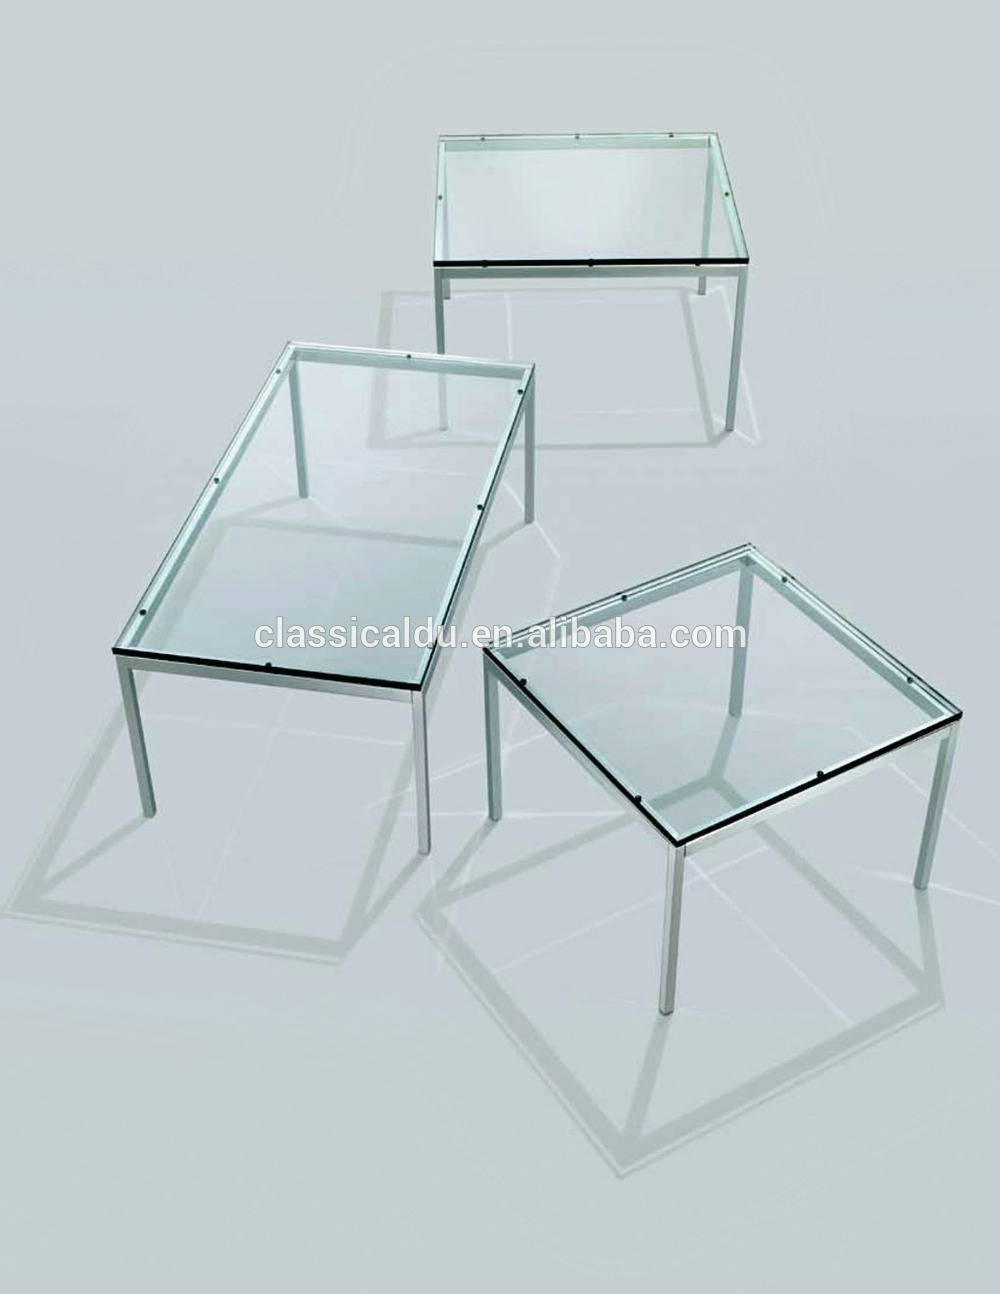 Brass And Glass Coffee Tables,rotating Glass Coffee Table,square with regard to Revolving Glass Coffee Tables (Image 7 of 30)